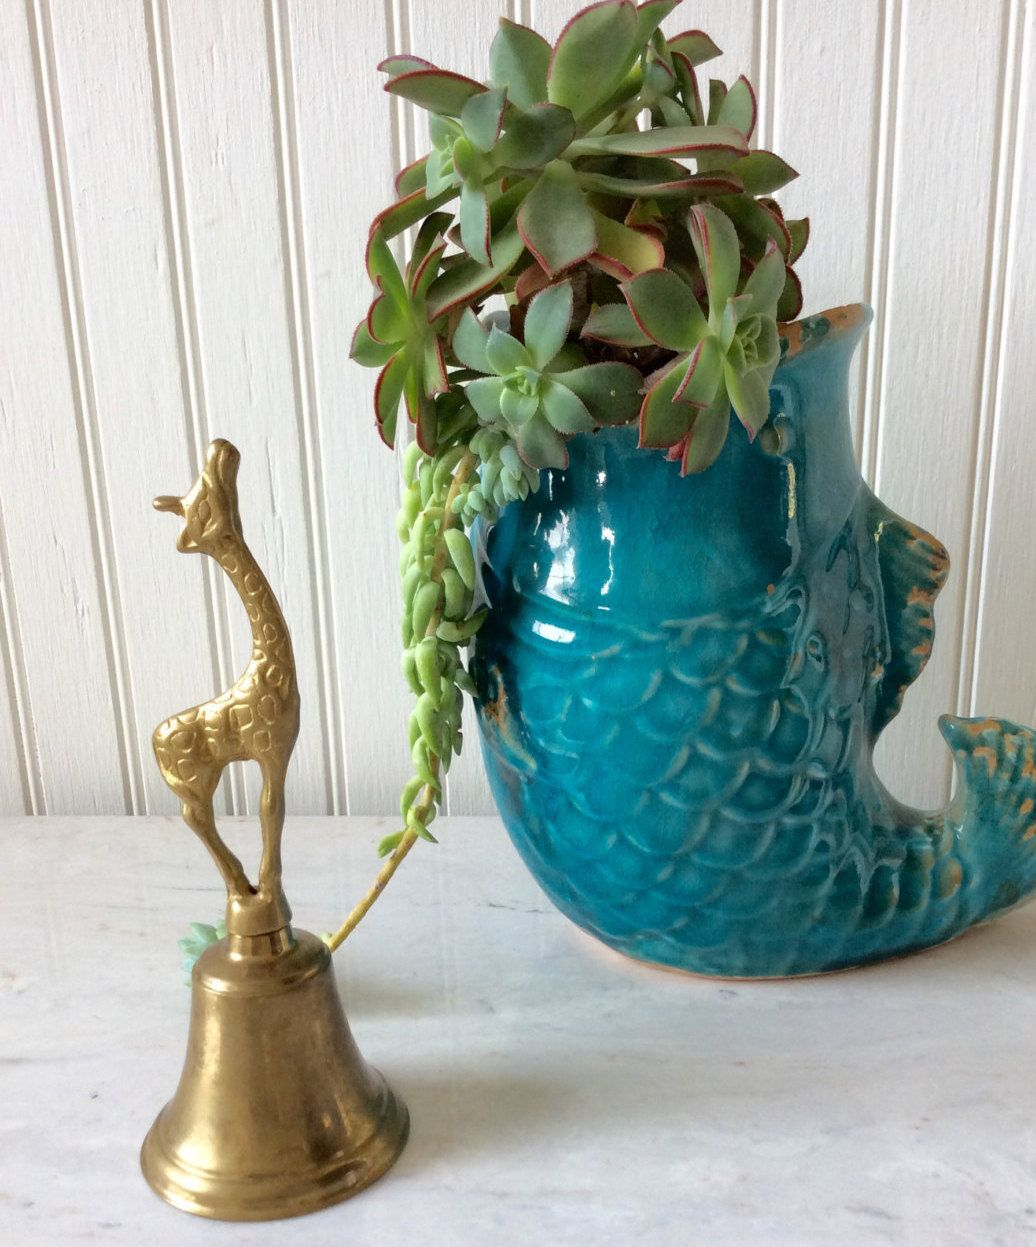 Vintage Giraffe Brass Bell, Solid Brass, Old World Decor, Coastal, Mid Century, Bookshelf Decor, Man Cave, Collectable by YellowHouseDecor on Etsy https://www.etsy.com/listing/255516871/vintage-giraffe-brass-bell-solid-brass